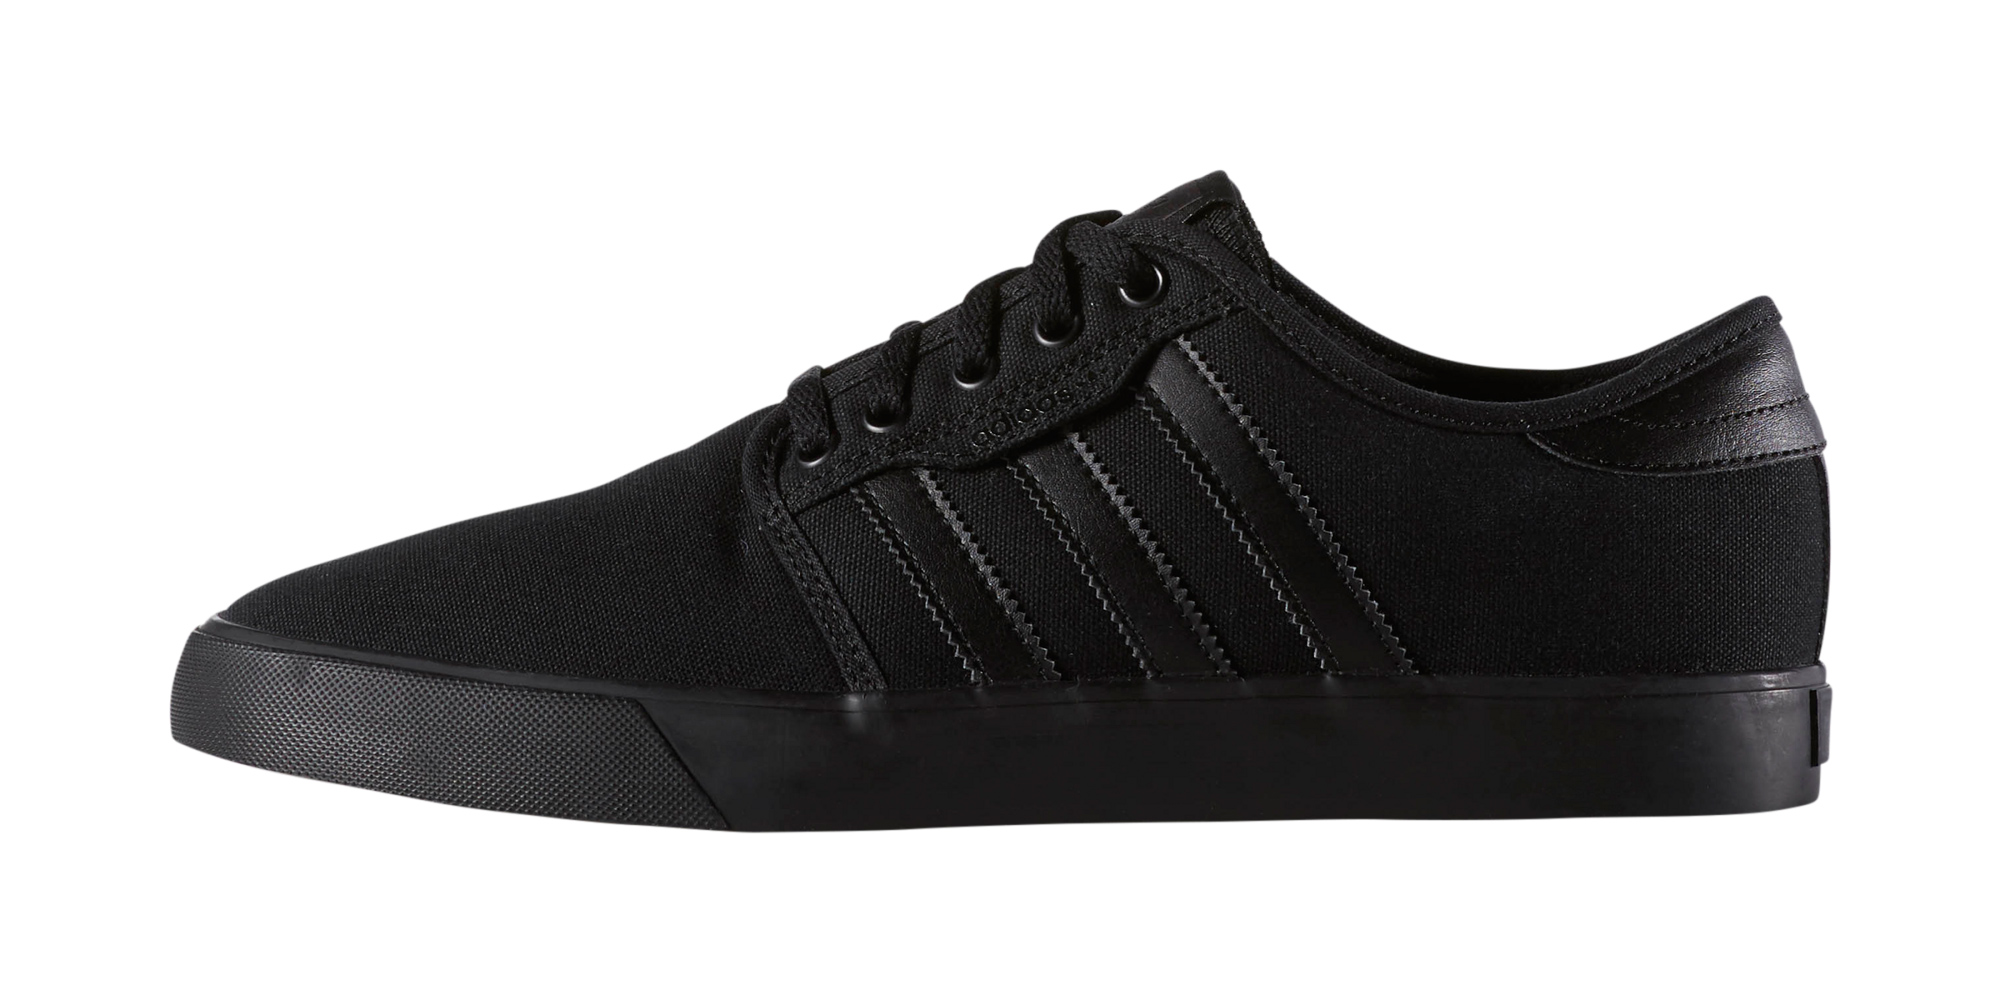 Adidas Skateboarding - Seeley - - - Skate Shoes, Trainers, Herritage, Suede, 52f673